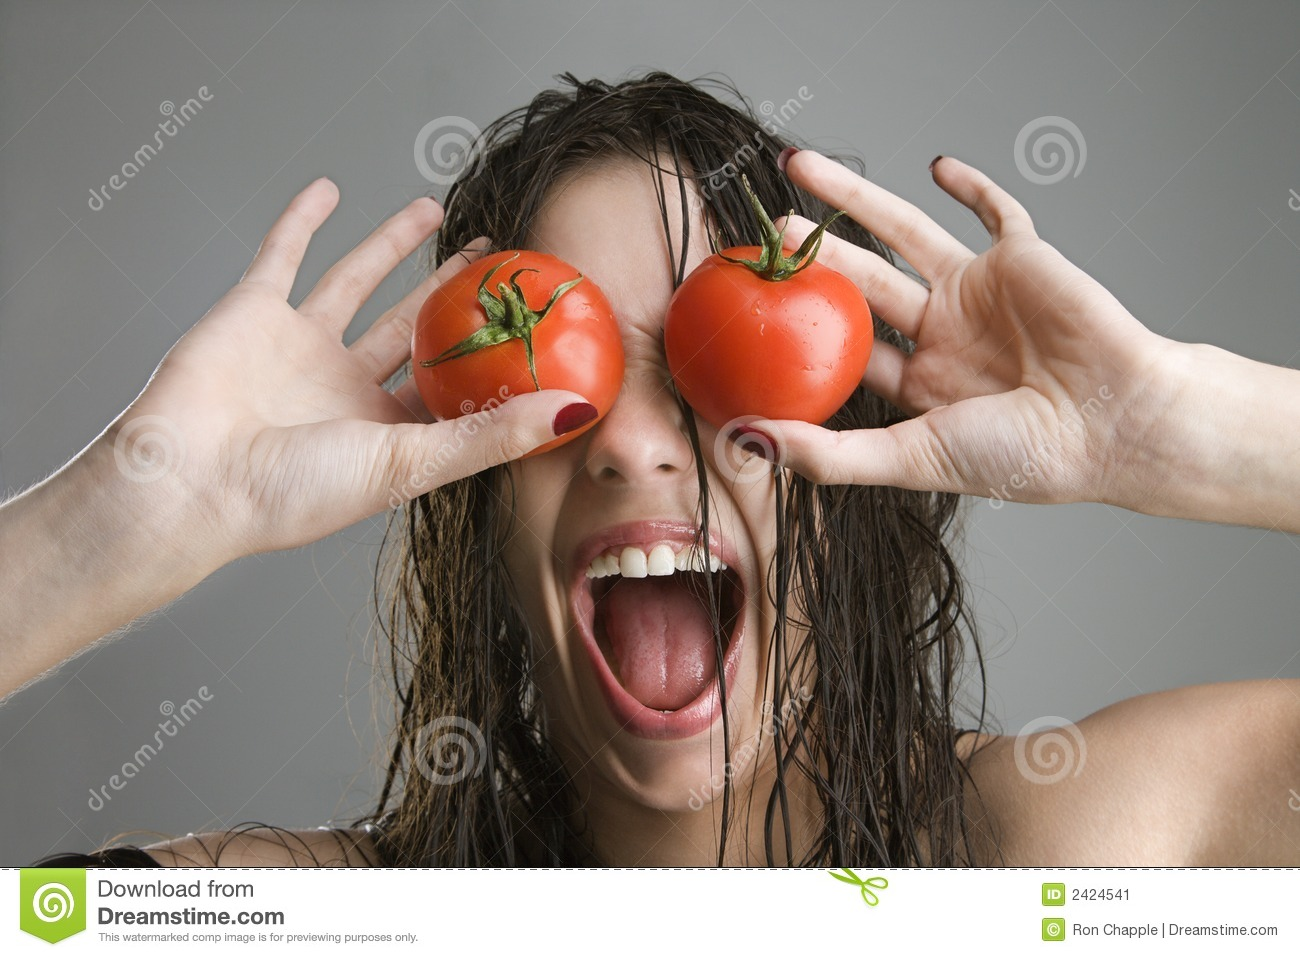 Woman with tomatoes over eyes.